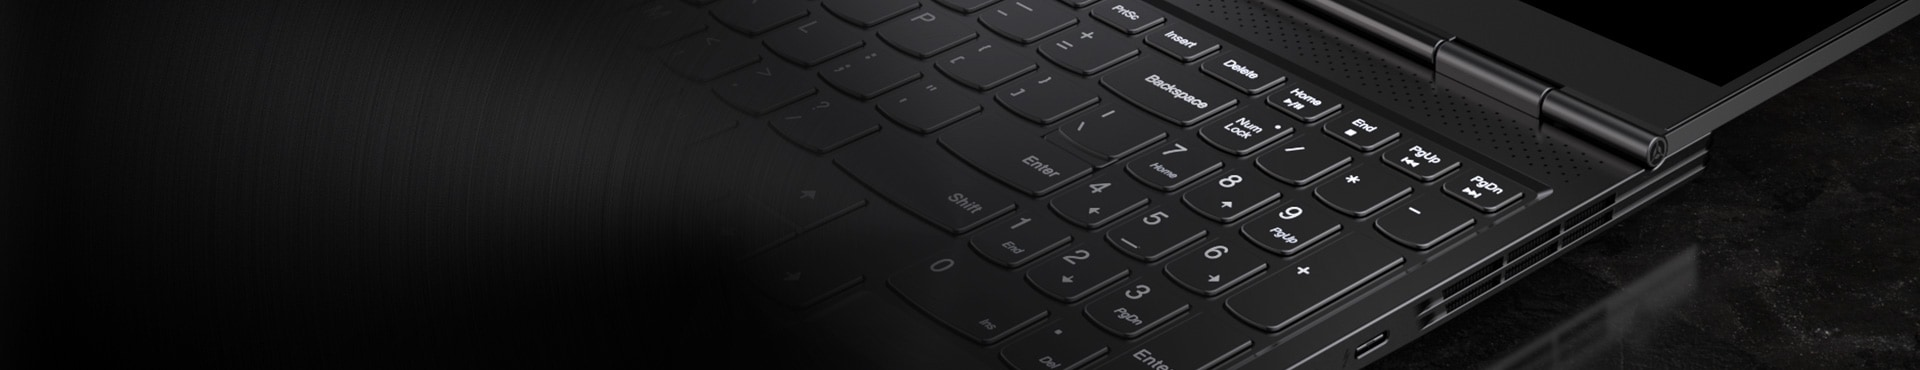 Up close view of Lenovo laptop keyboard